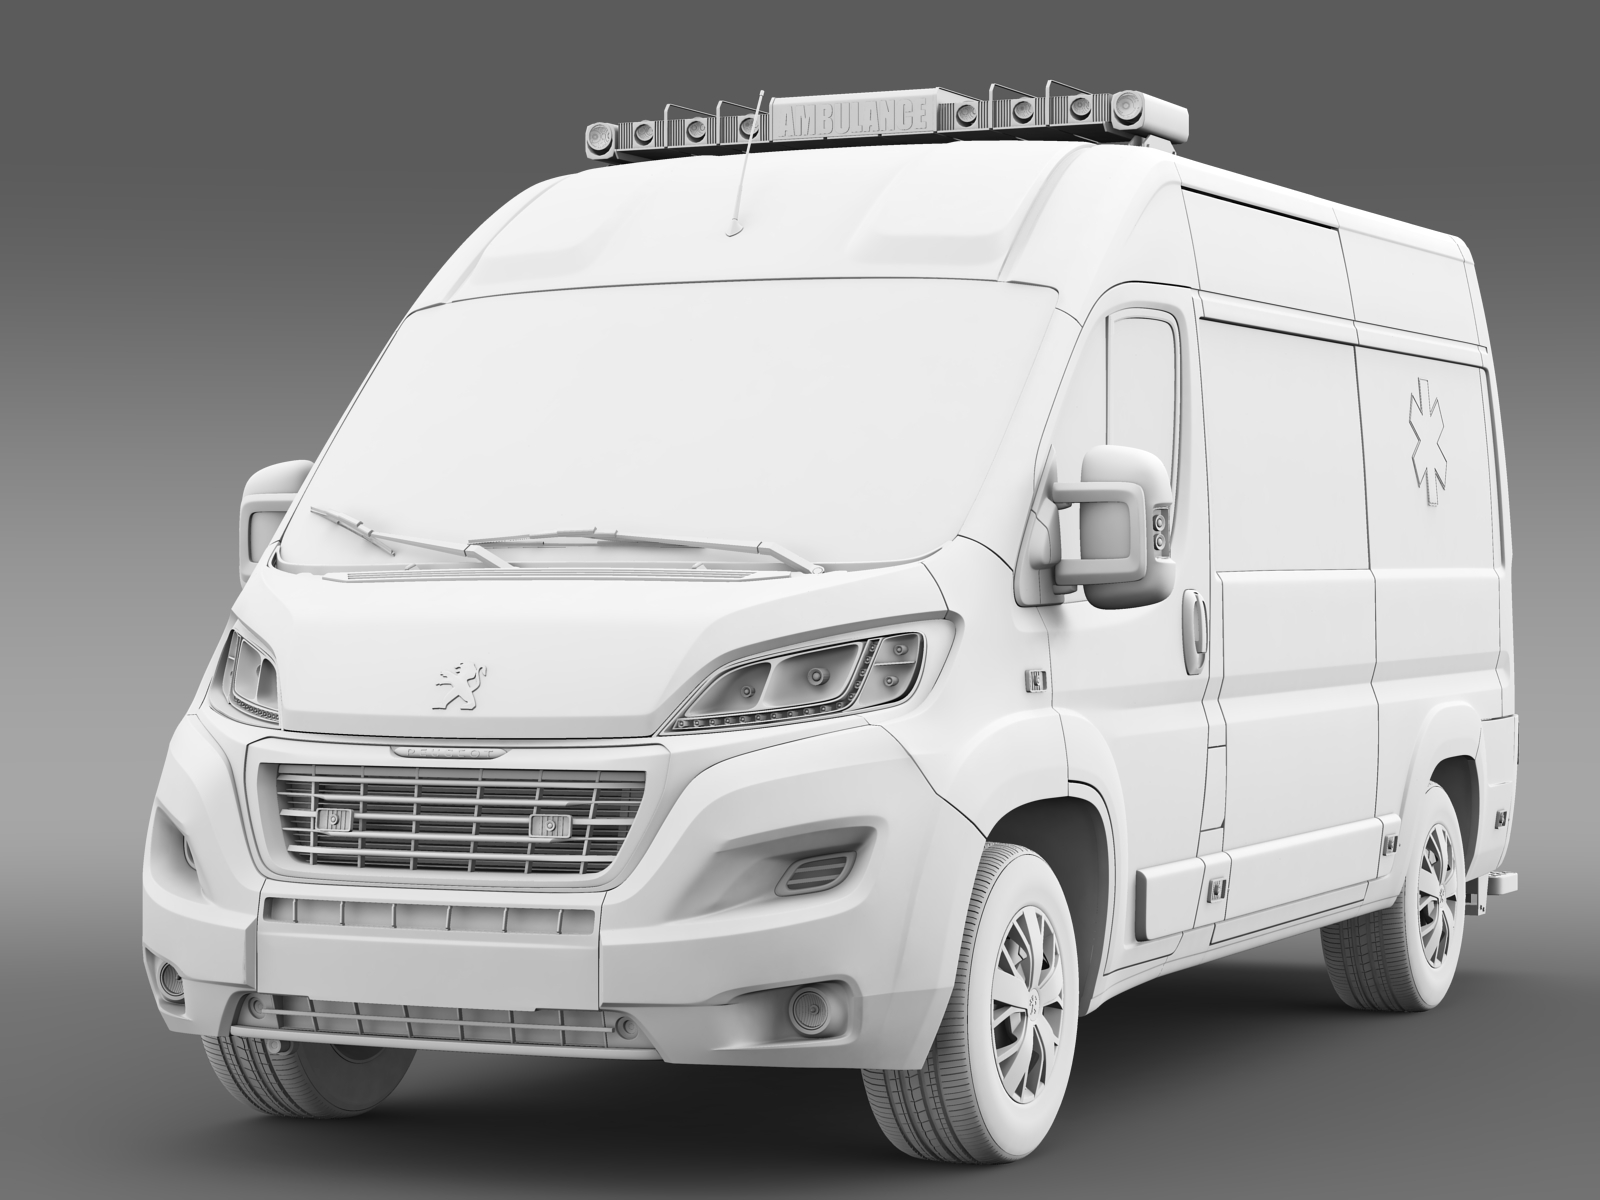 peugeot boxer van ambulance 2015 by creator 3d 3docean. Black Bedroom Furniture Sets. Home Design Ideas